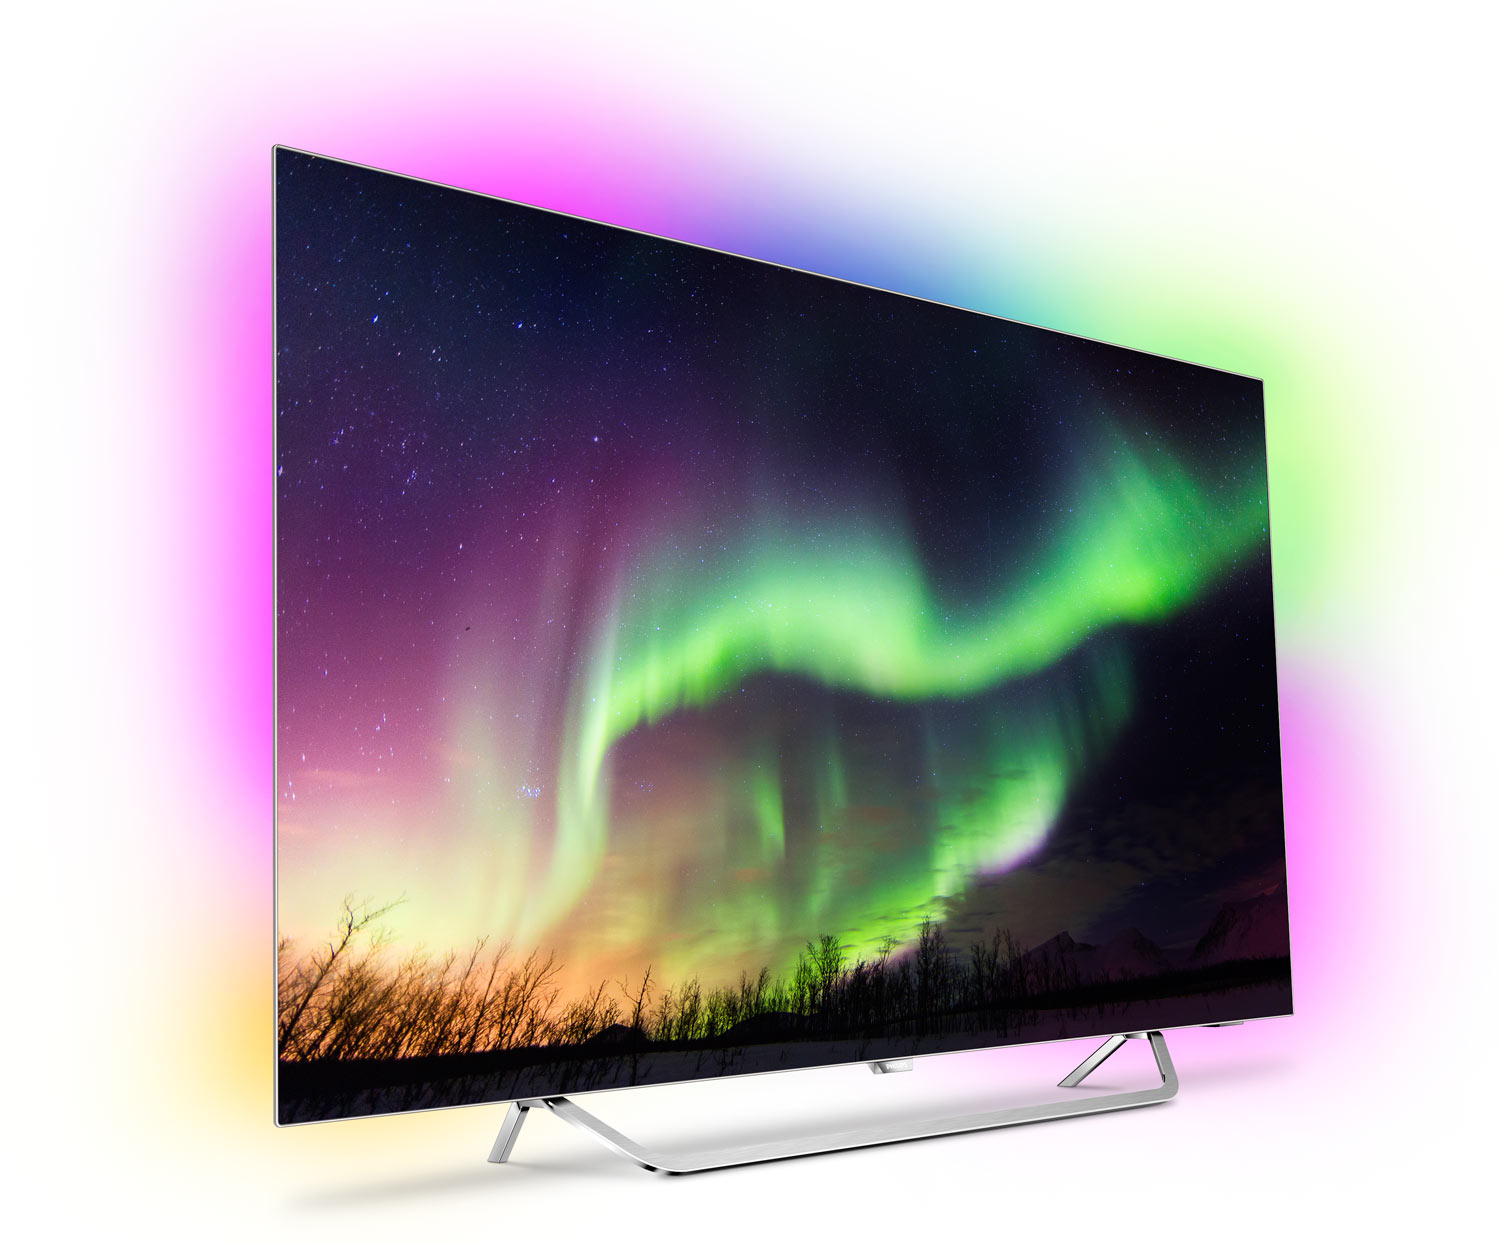 Philips 2018 TV line-up - full overview - FlatpanelsHD